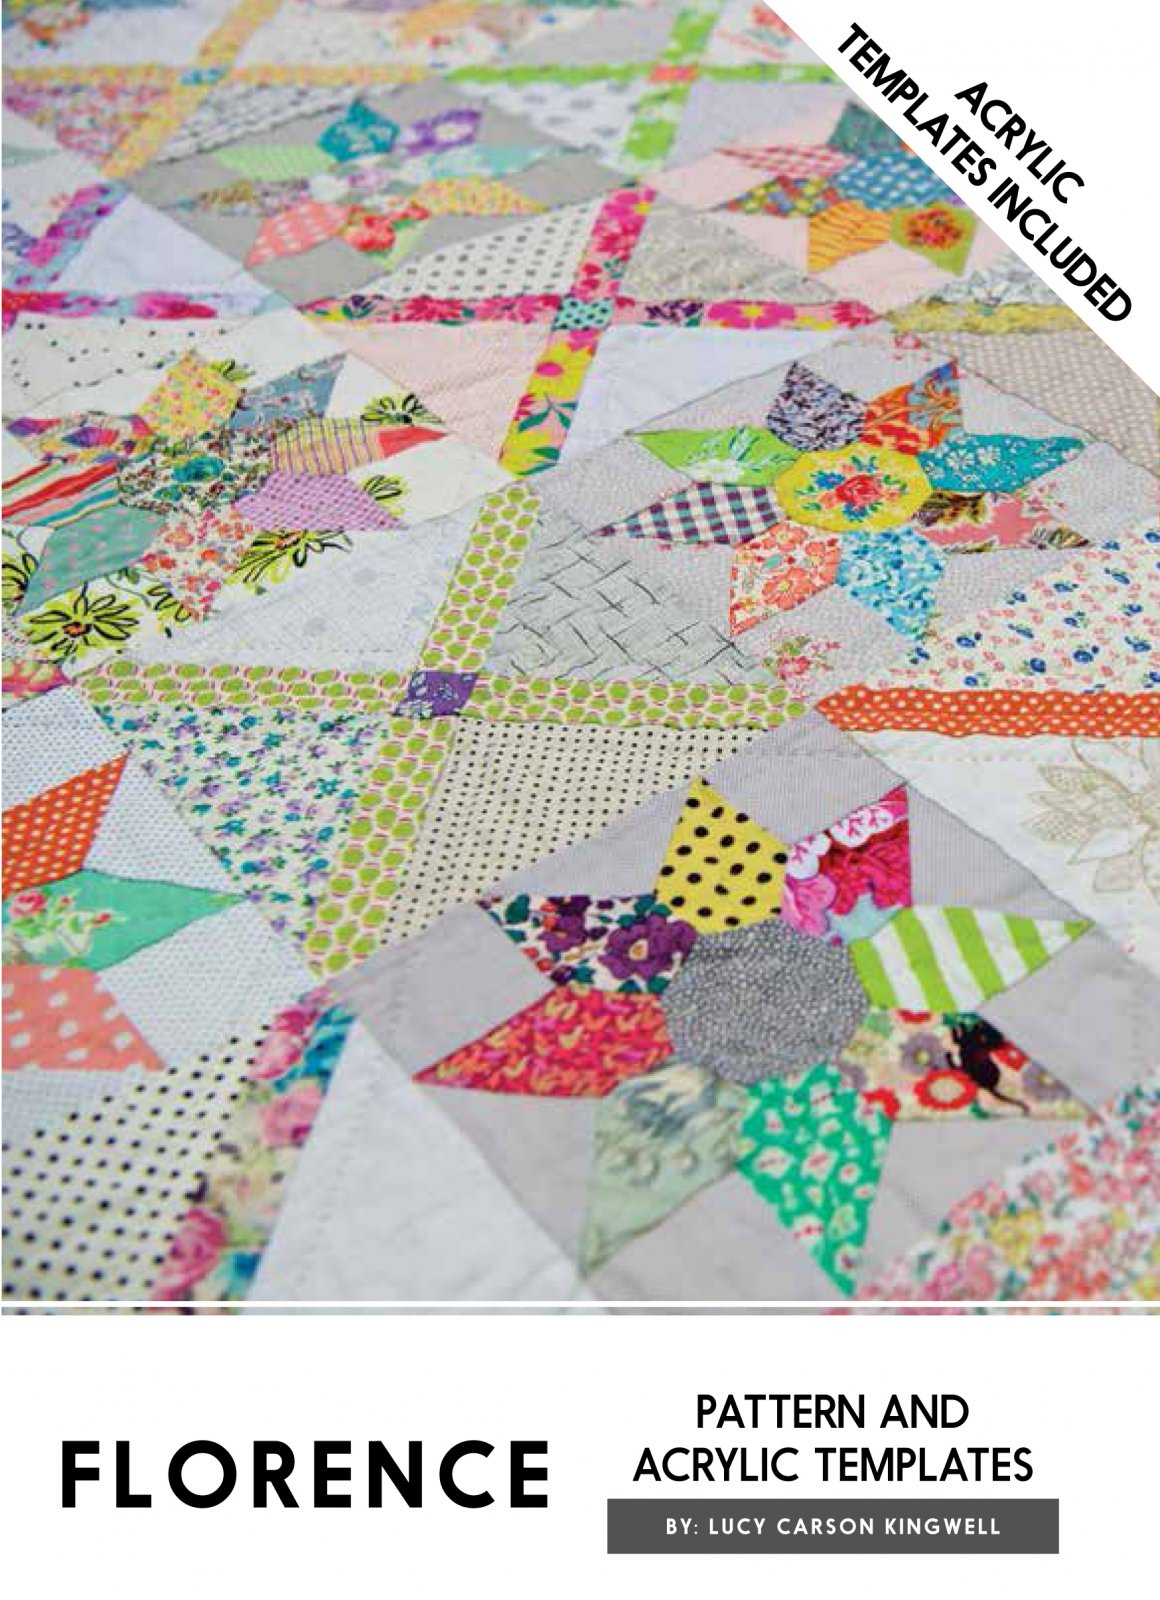 Florence Acrylic Templates And Pattern by Lucy Carson Kingwell